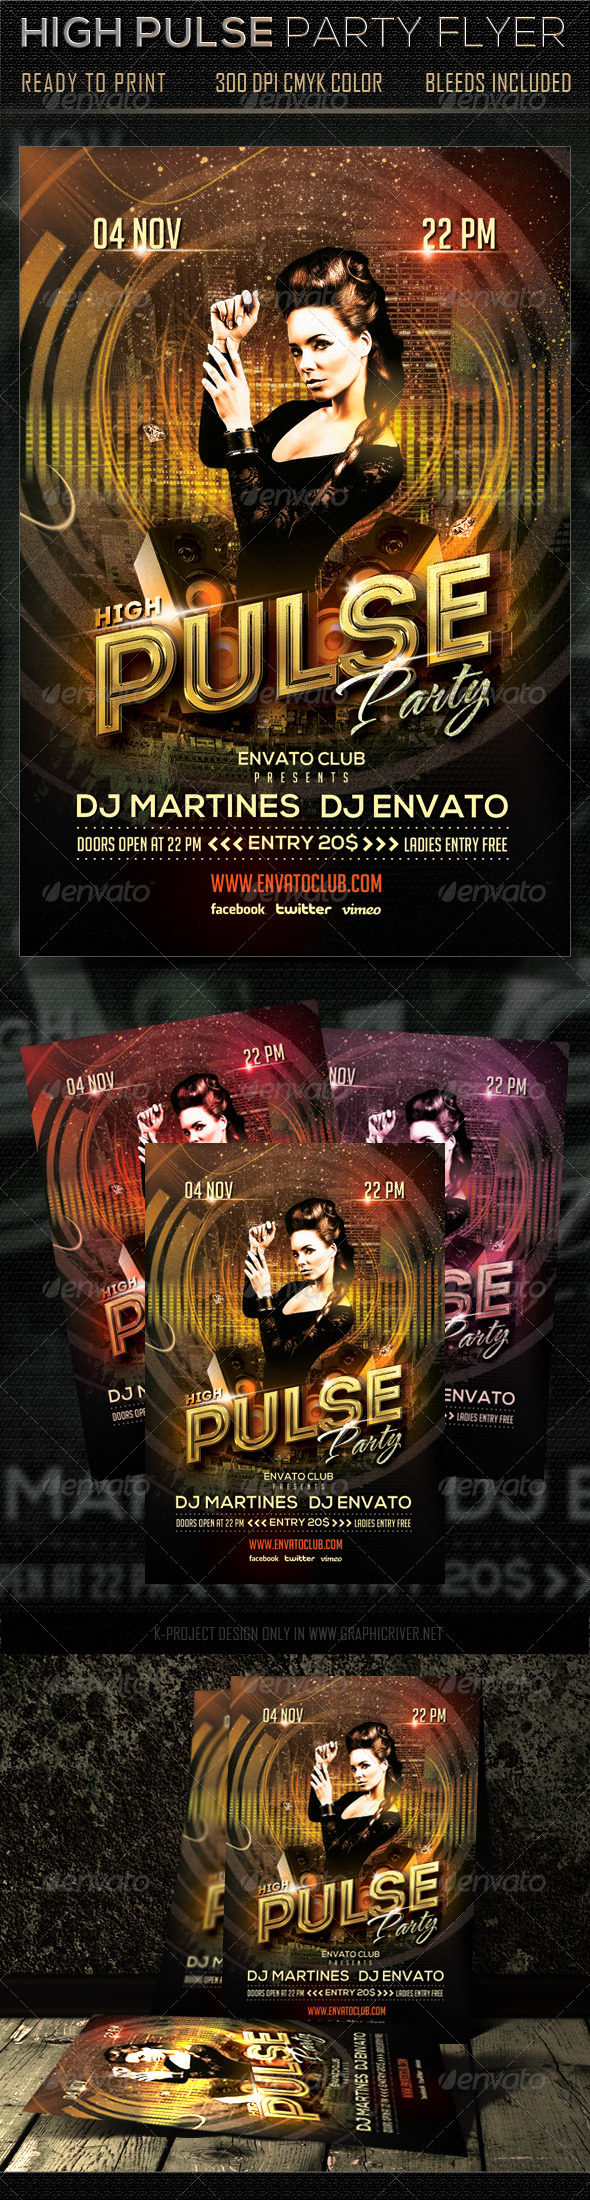 High Pulse Party Flyer - Clubs & Parties Events